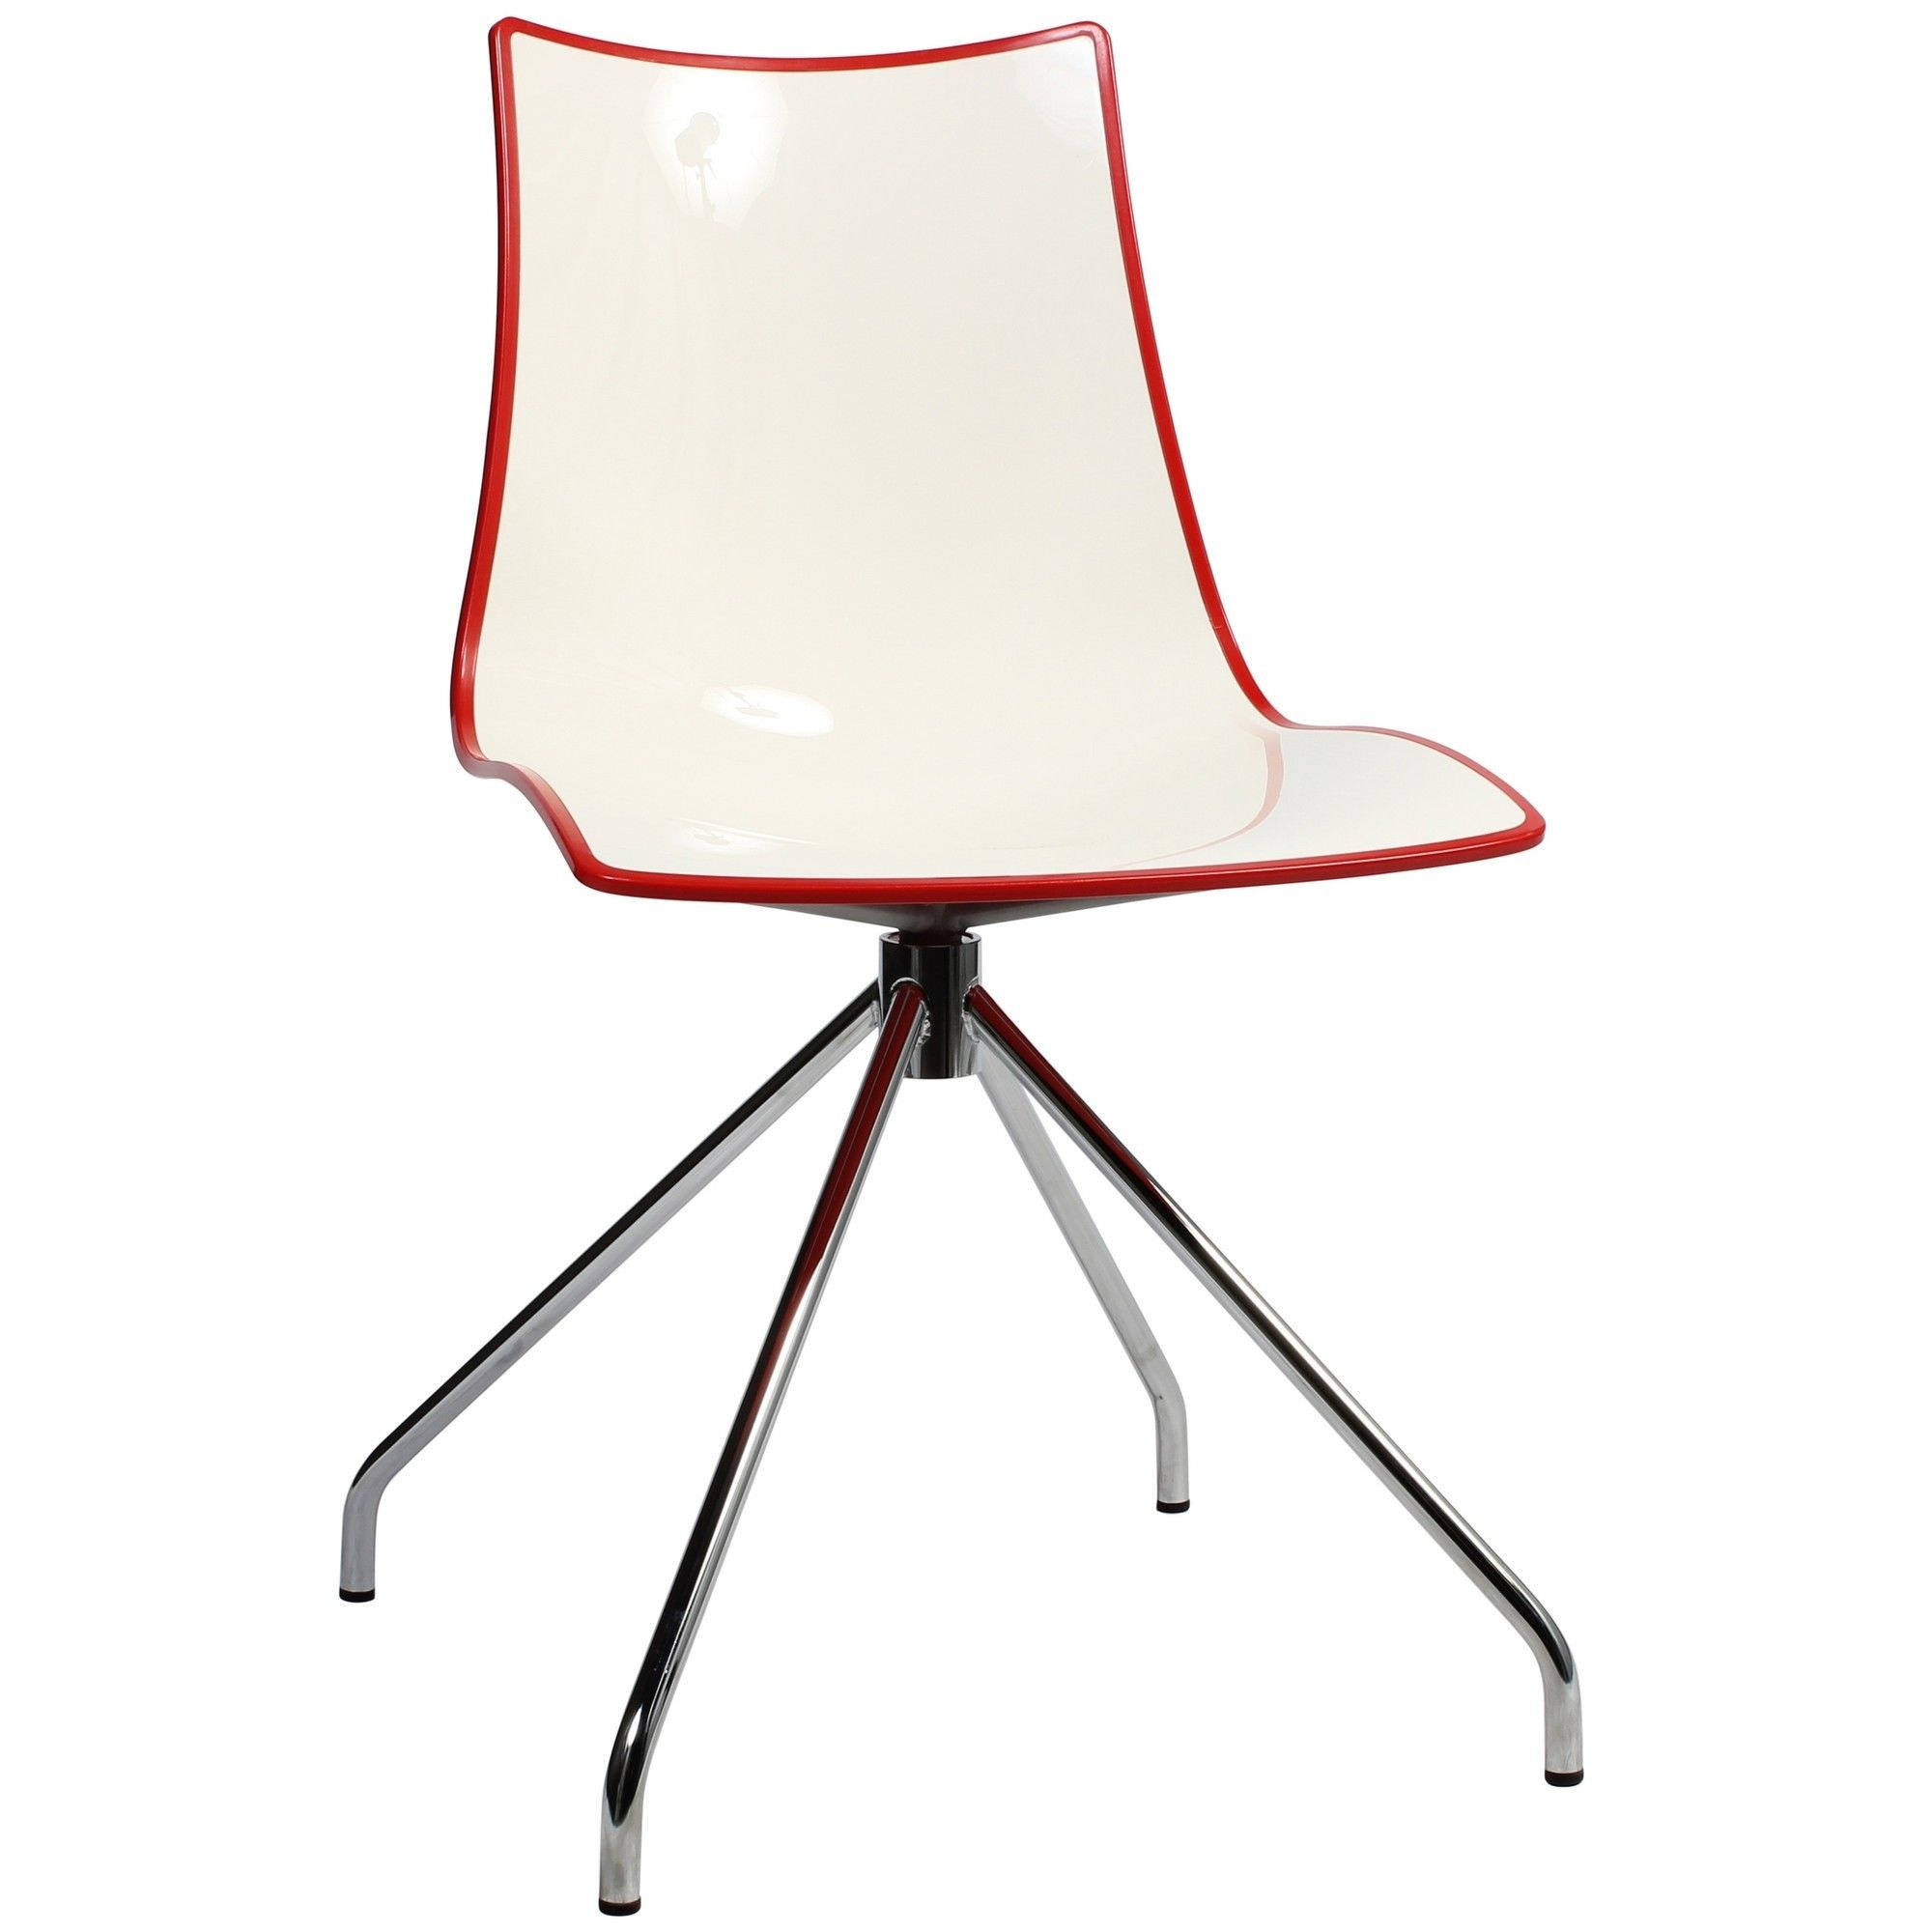 Zebra Bicolore Italian Made Commercial Grade Dining Chair, Trestle Leg, Red / Chrome